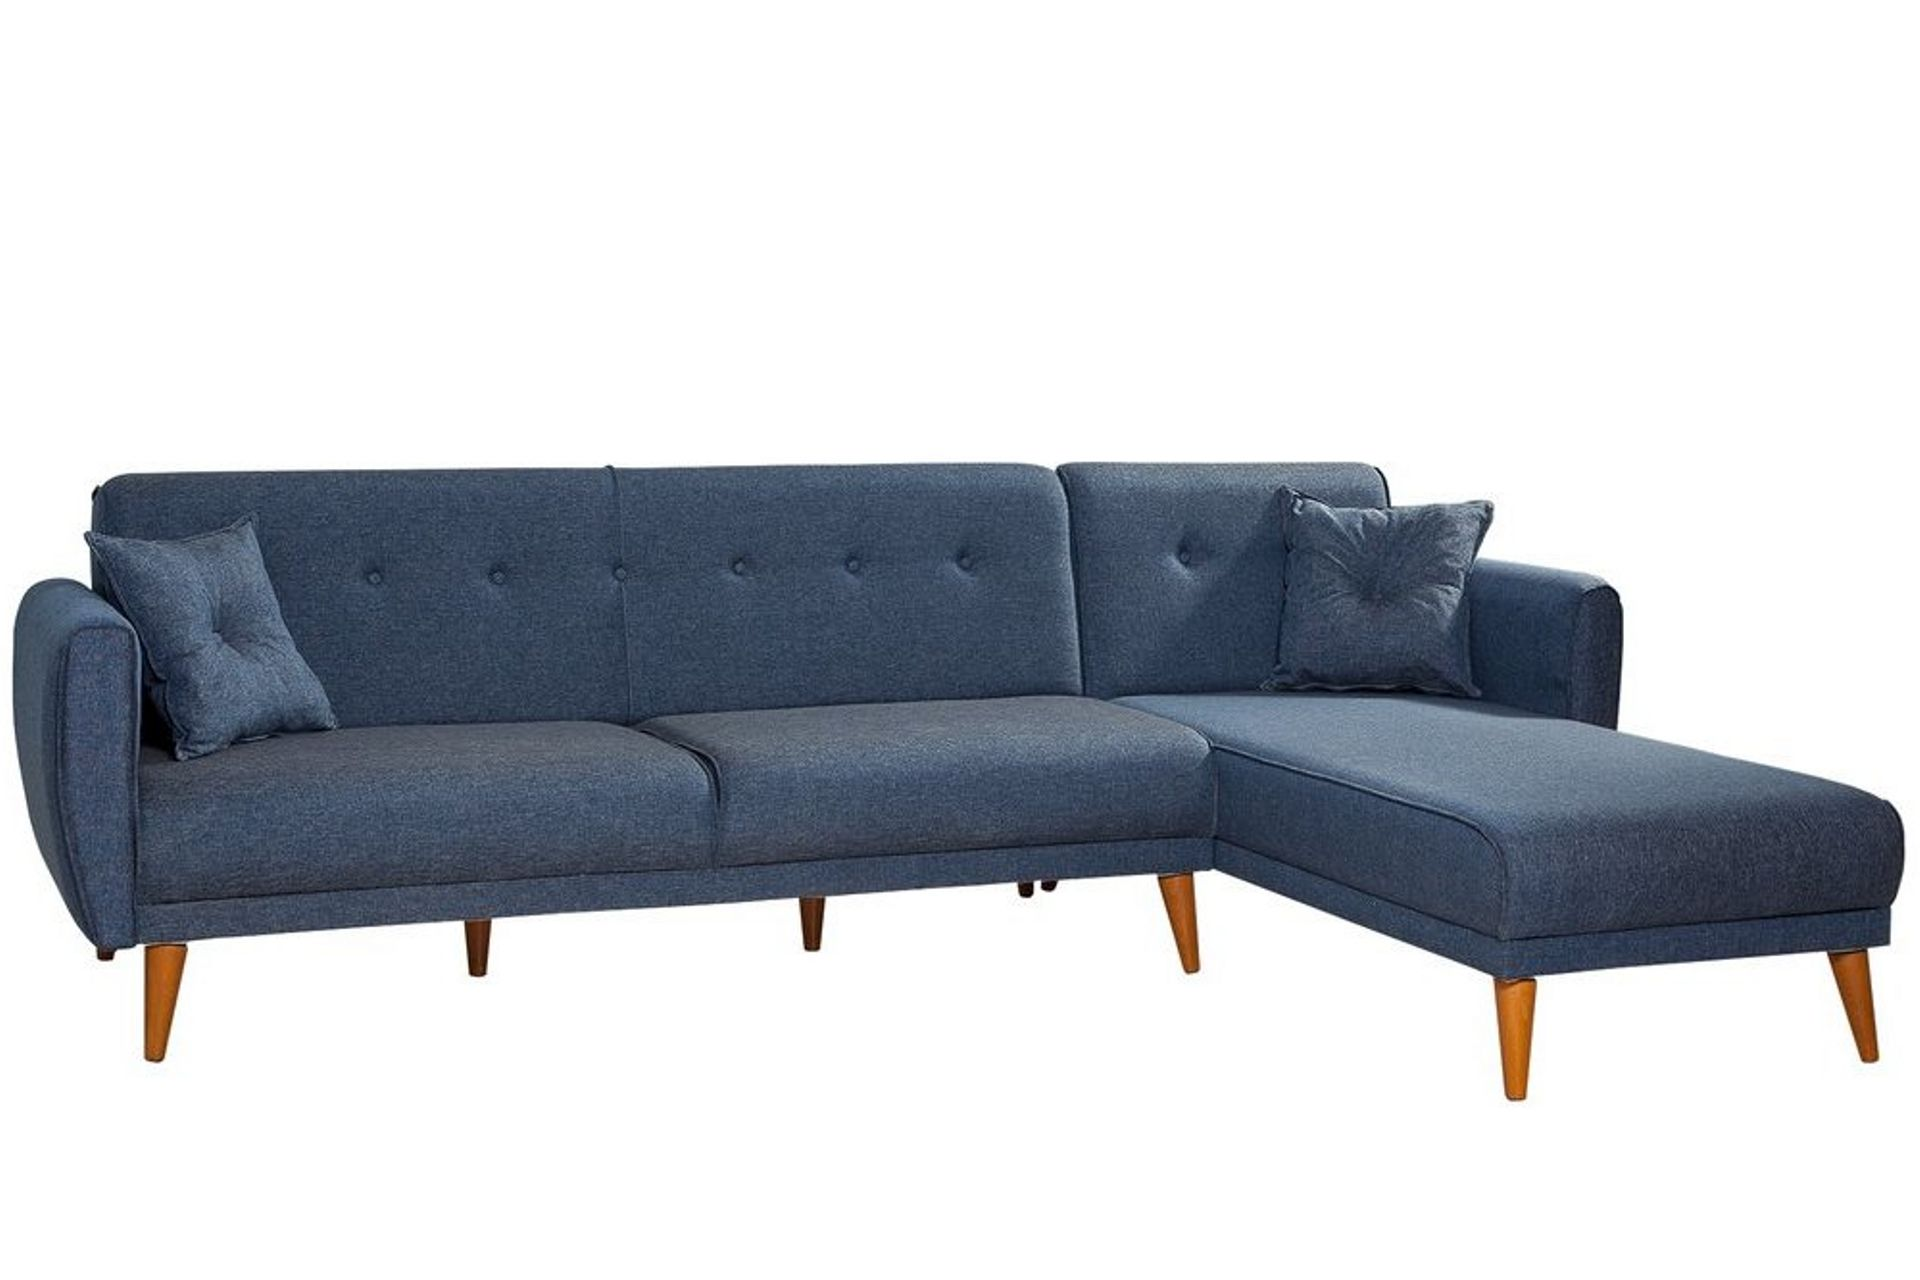 Aria Corner Chaise Sofa Bed, Right, Navy Blue